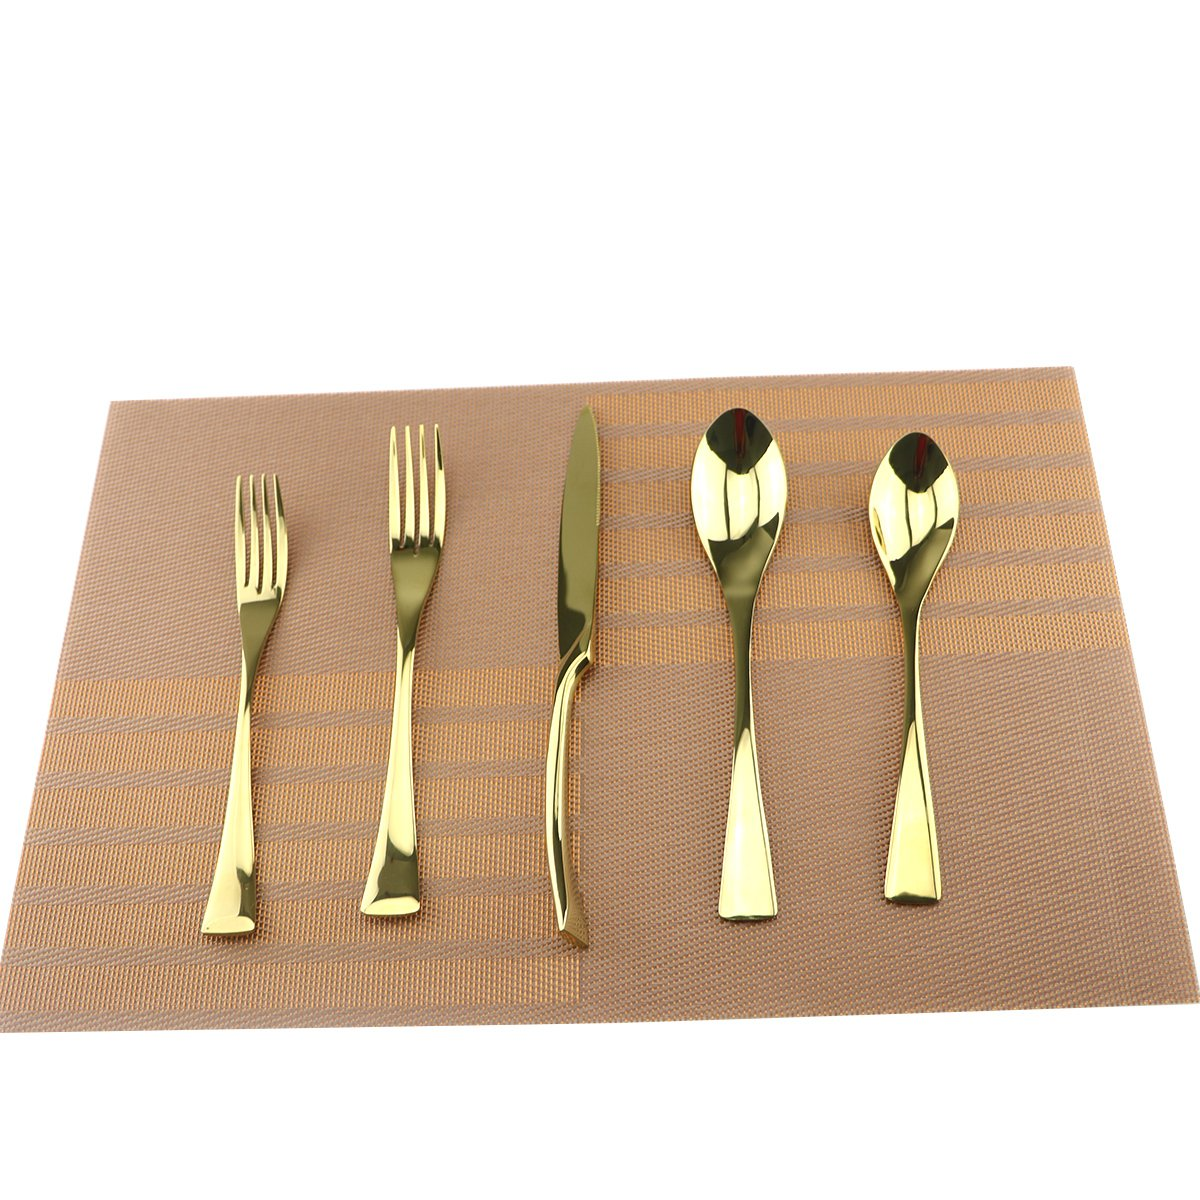 Uniturcky Gold 18/10 Stainless Steel Flatware Set – Stylish Set of Eating Utensils for 1 Person - Dinner Knife, Fork, Soup Spoon, Tea Spoon - Ideal Weight & Size, for Everyday Use or Holidays